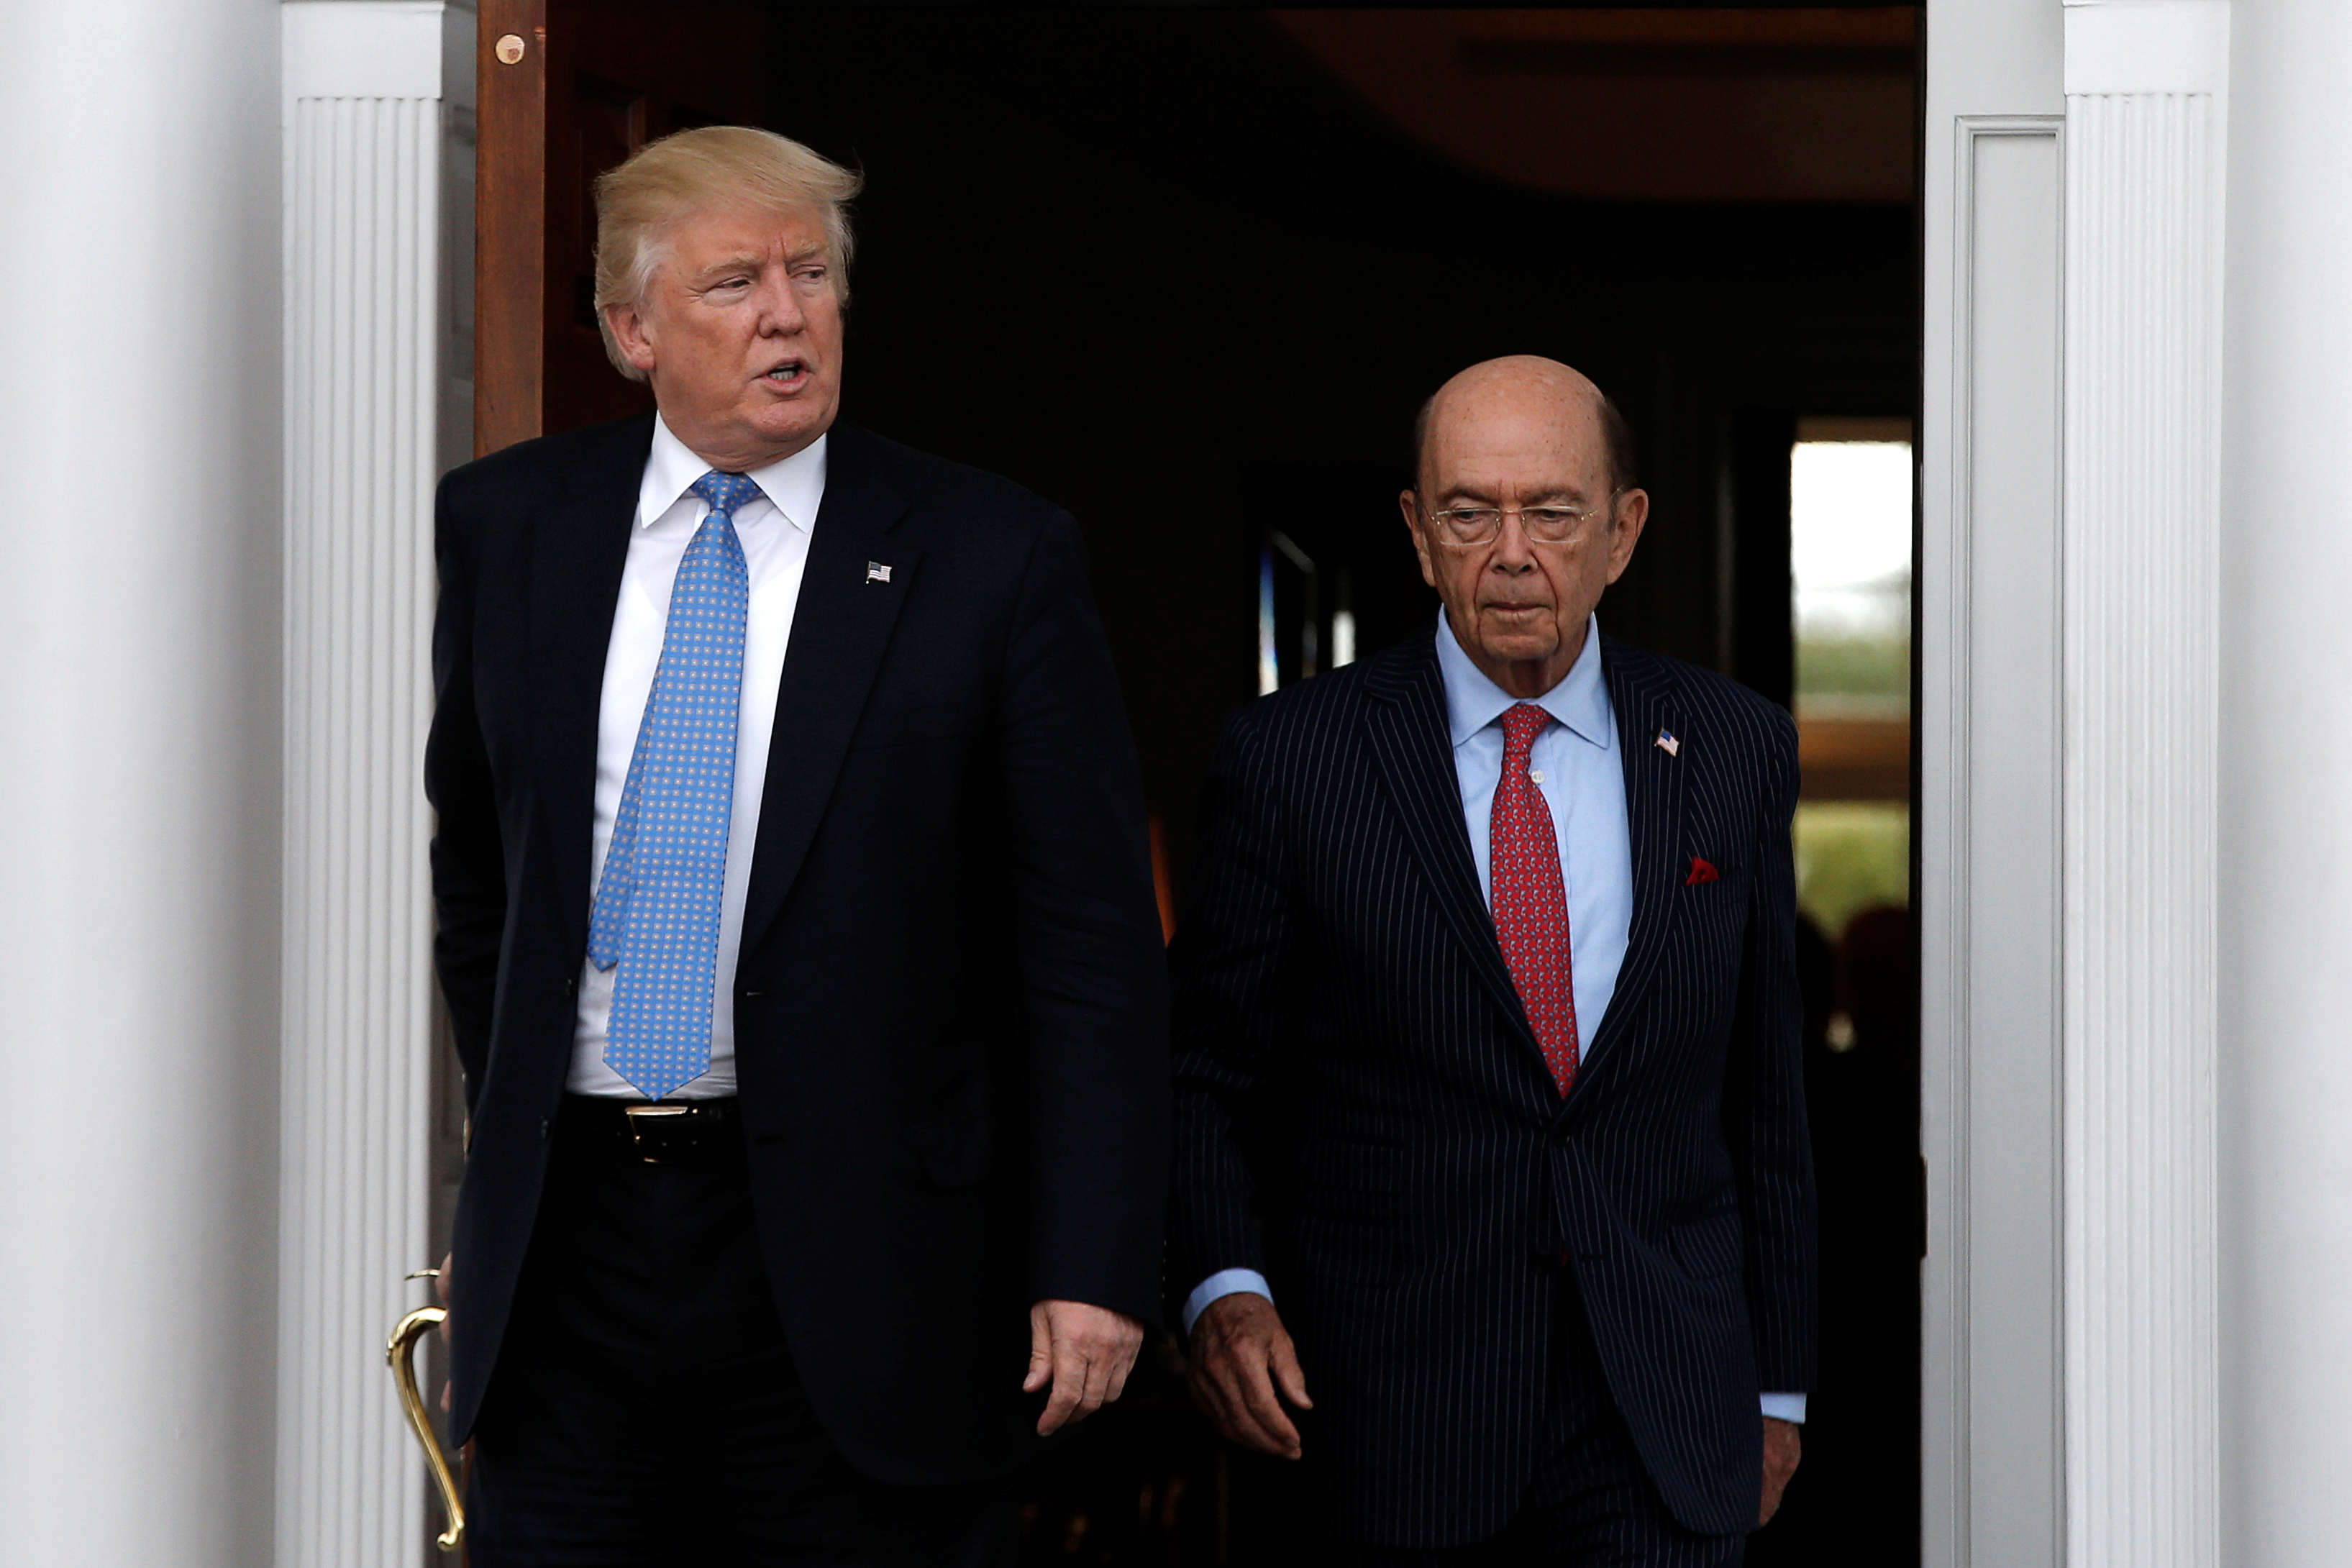 U.S. President-elect Donald Trump emerges with Wilbur Ross after their meeting at Trump National Golf Club in Bedminster, New Jersey, U.S., November 20, 2016.  REUTERS/Mike Segar - RTSSISN